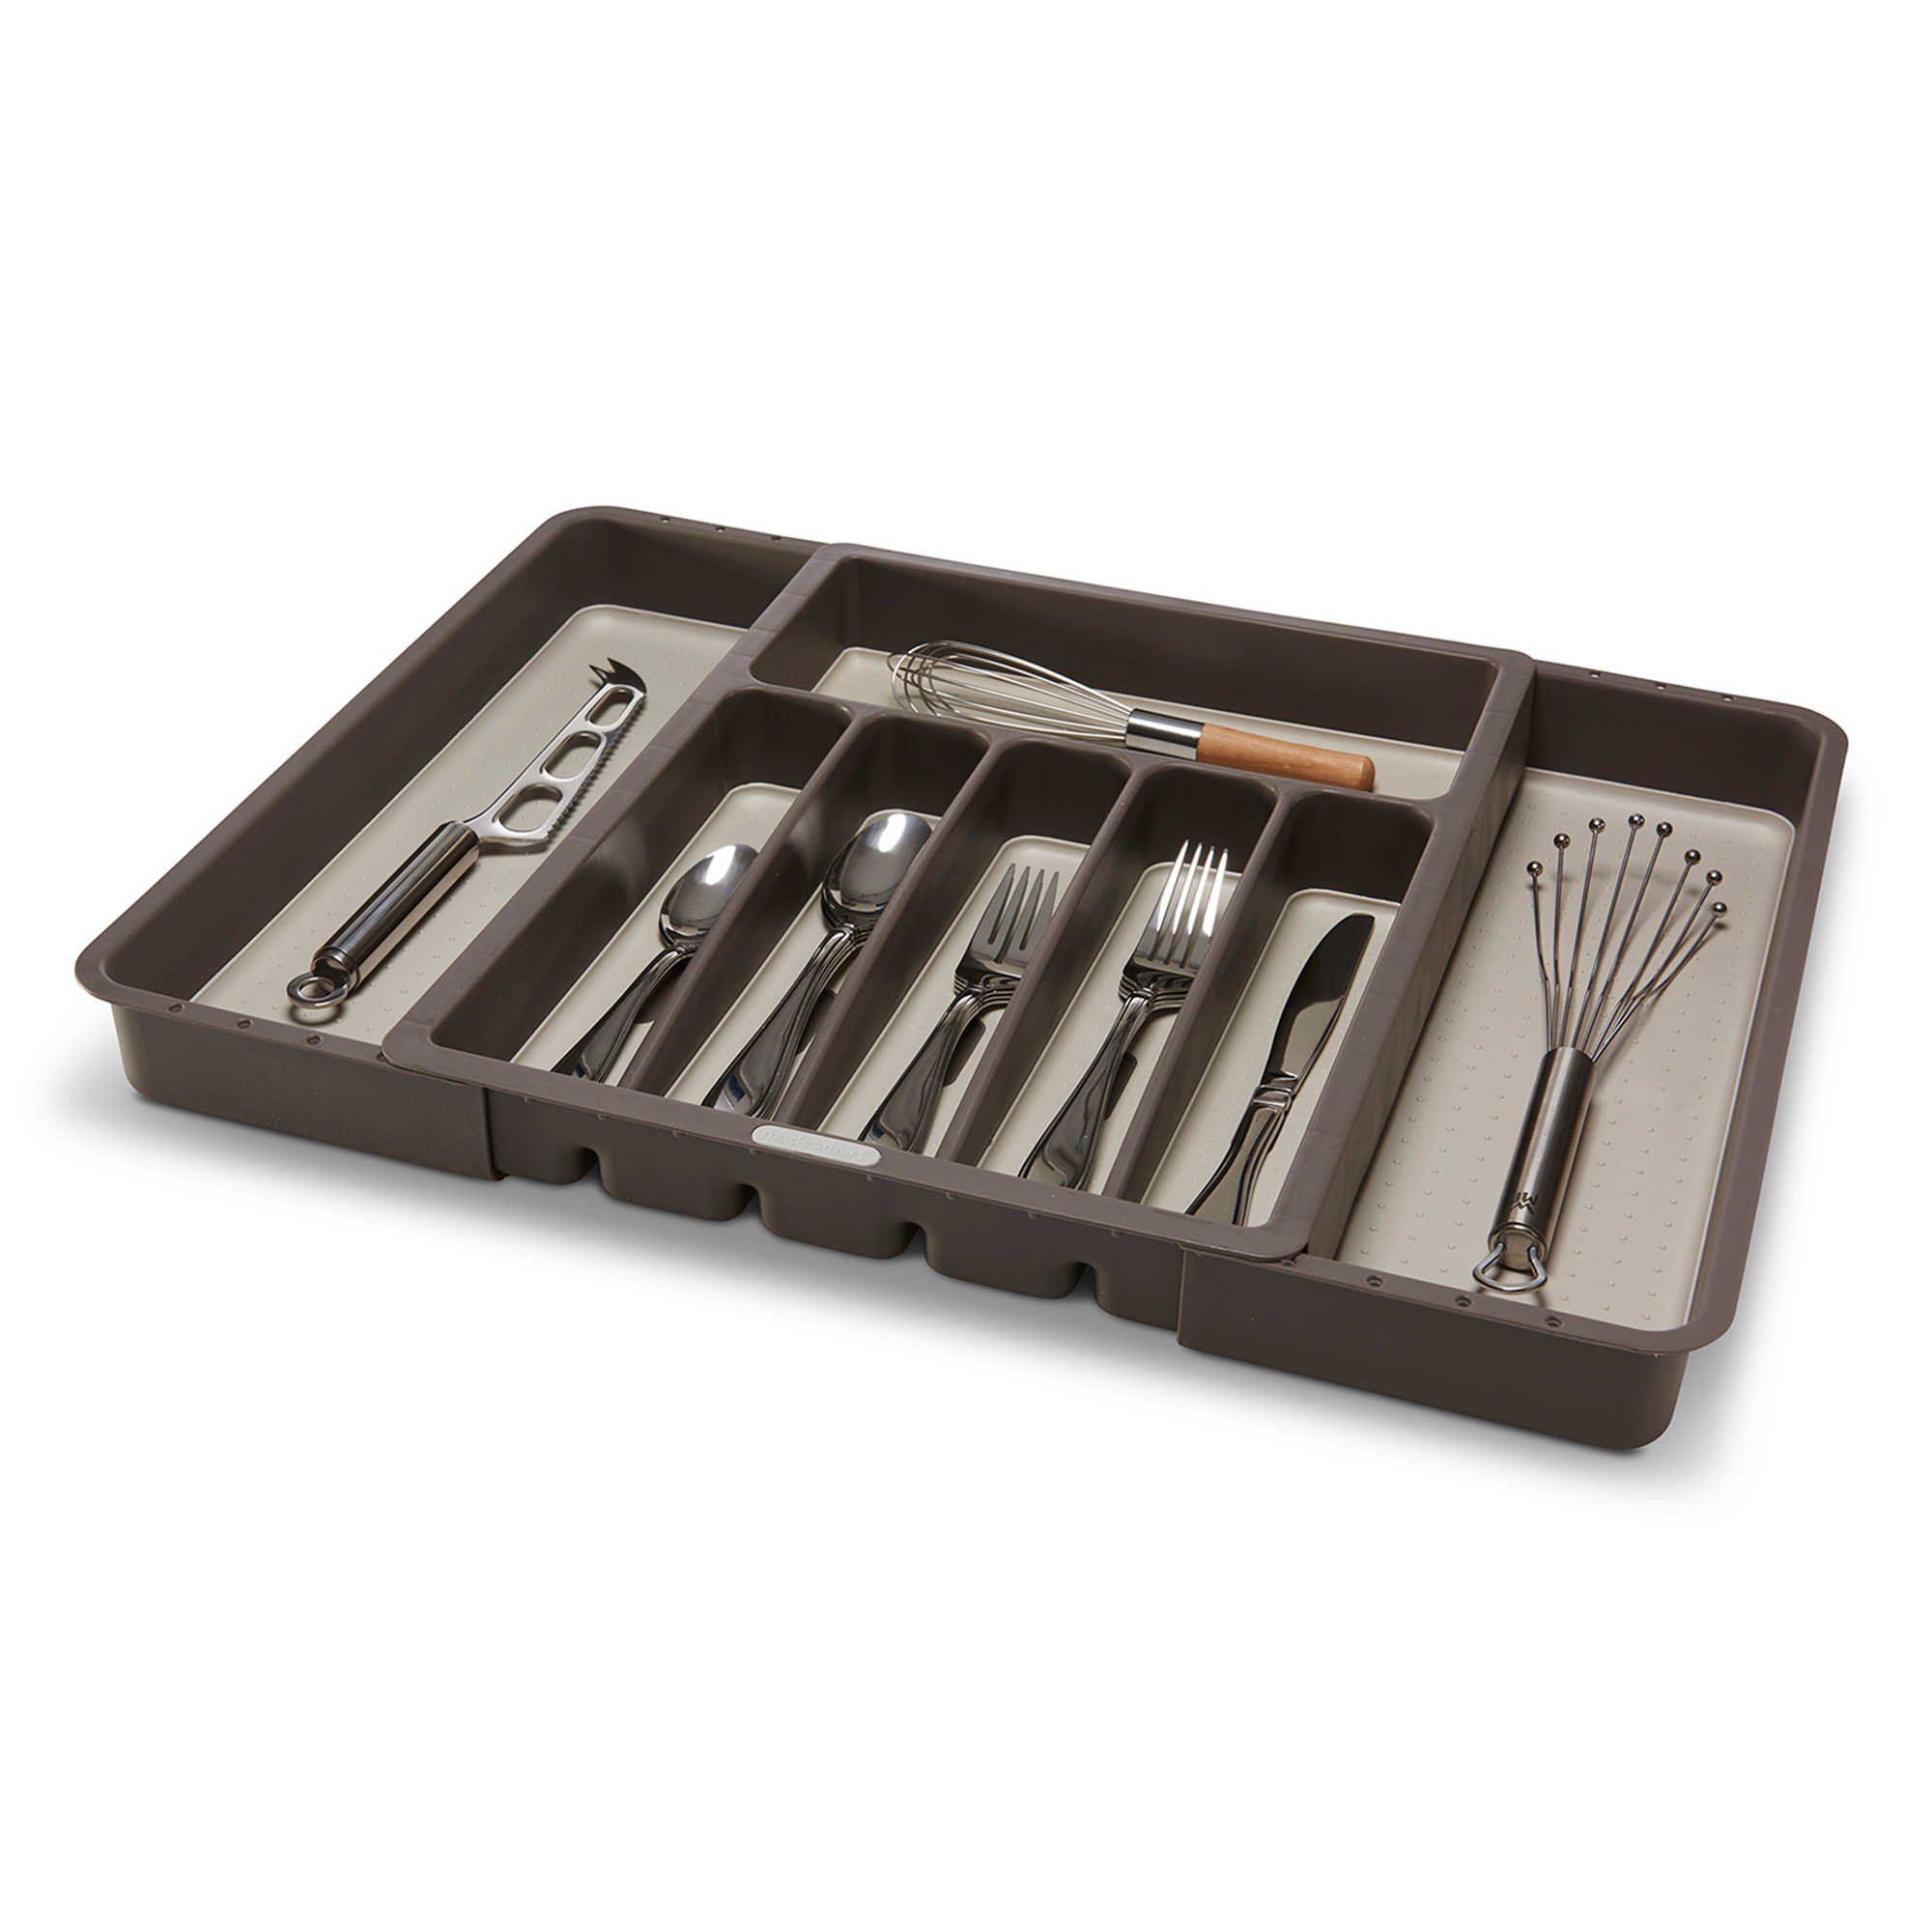 Made Smart Kitchen Drawer Organizer Expandable Total 8-Compartments Cutlery Tray in Brown